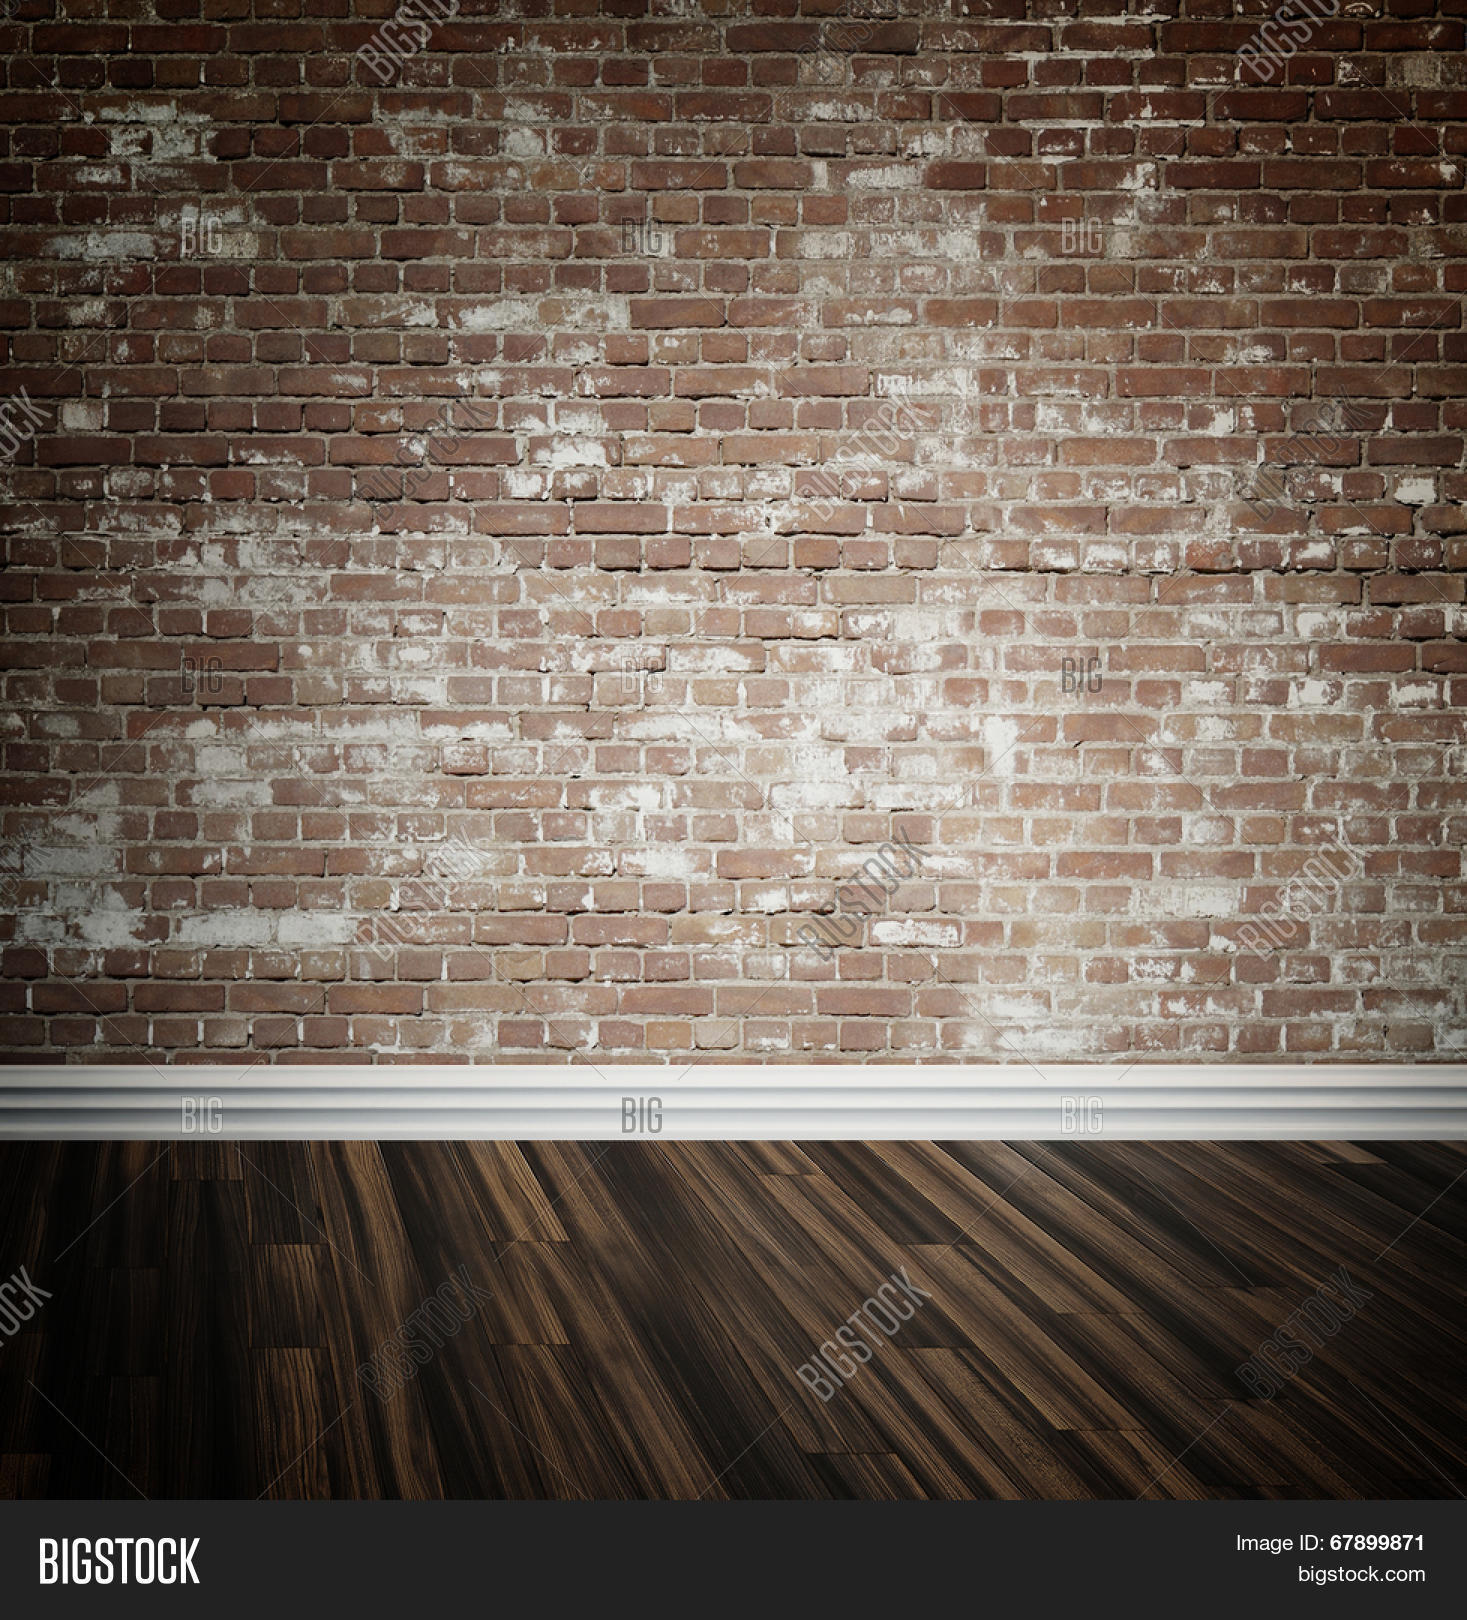 Rustic Face Brick Interior Wall And Wooden Parquet Floor Background With Central Highlight Skirting Board